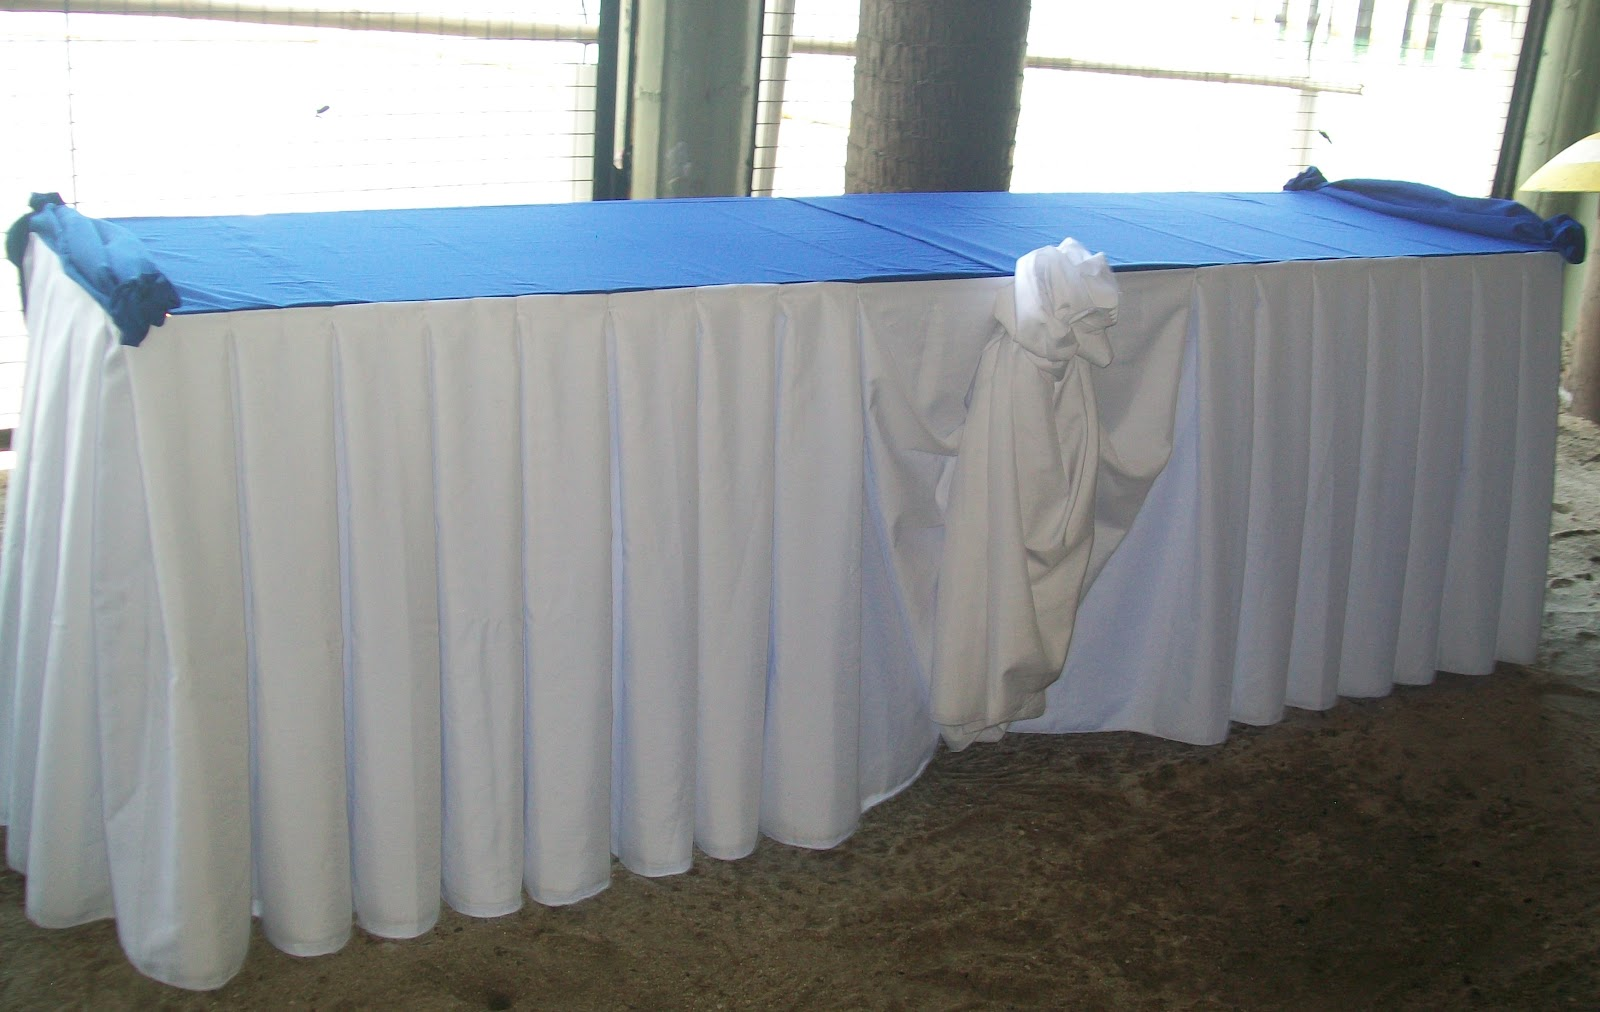 Buffet table skirting - Skirting For Your Buffet Table